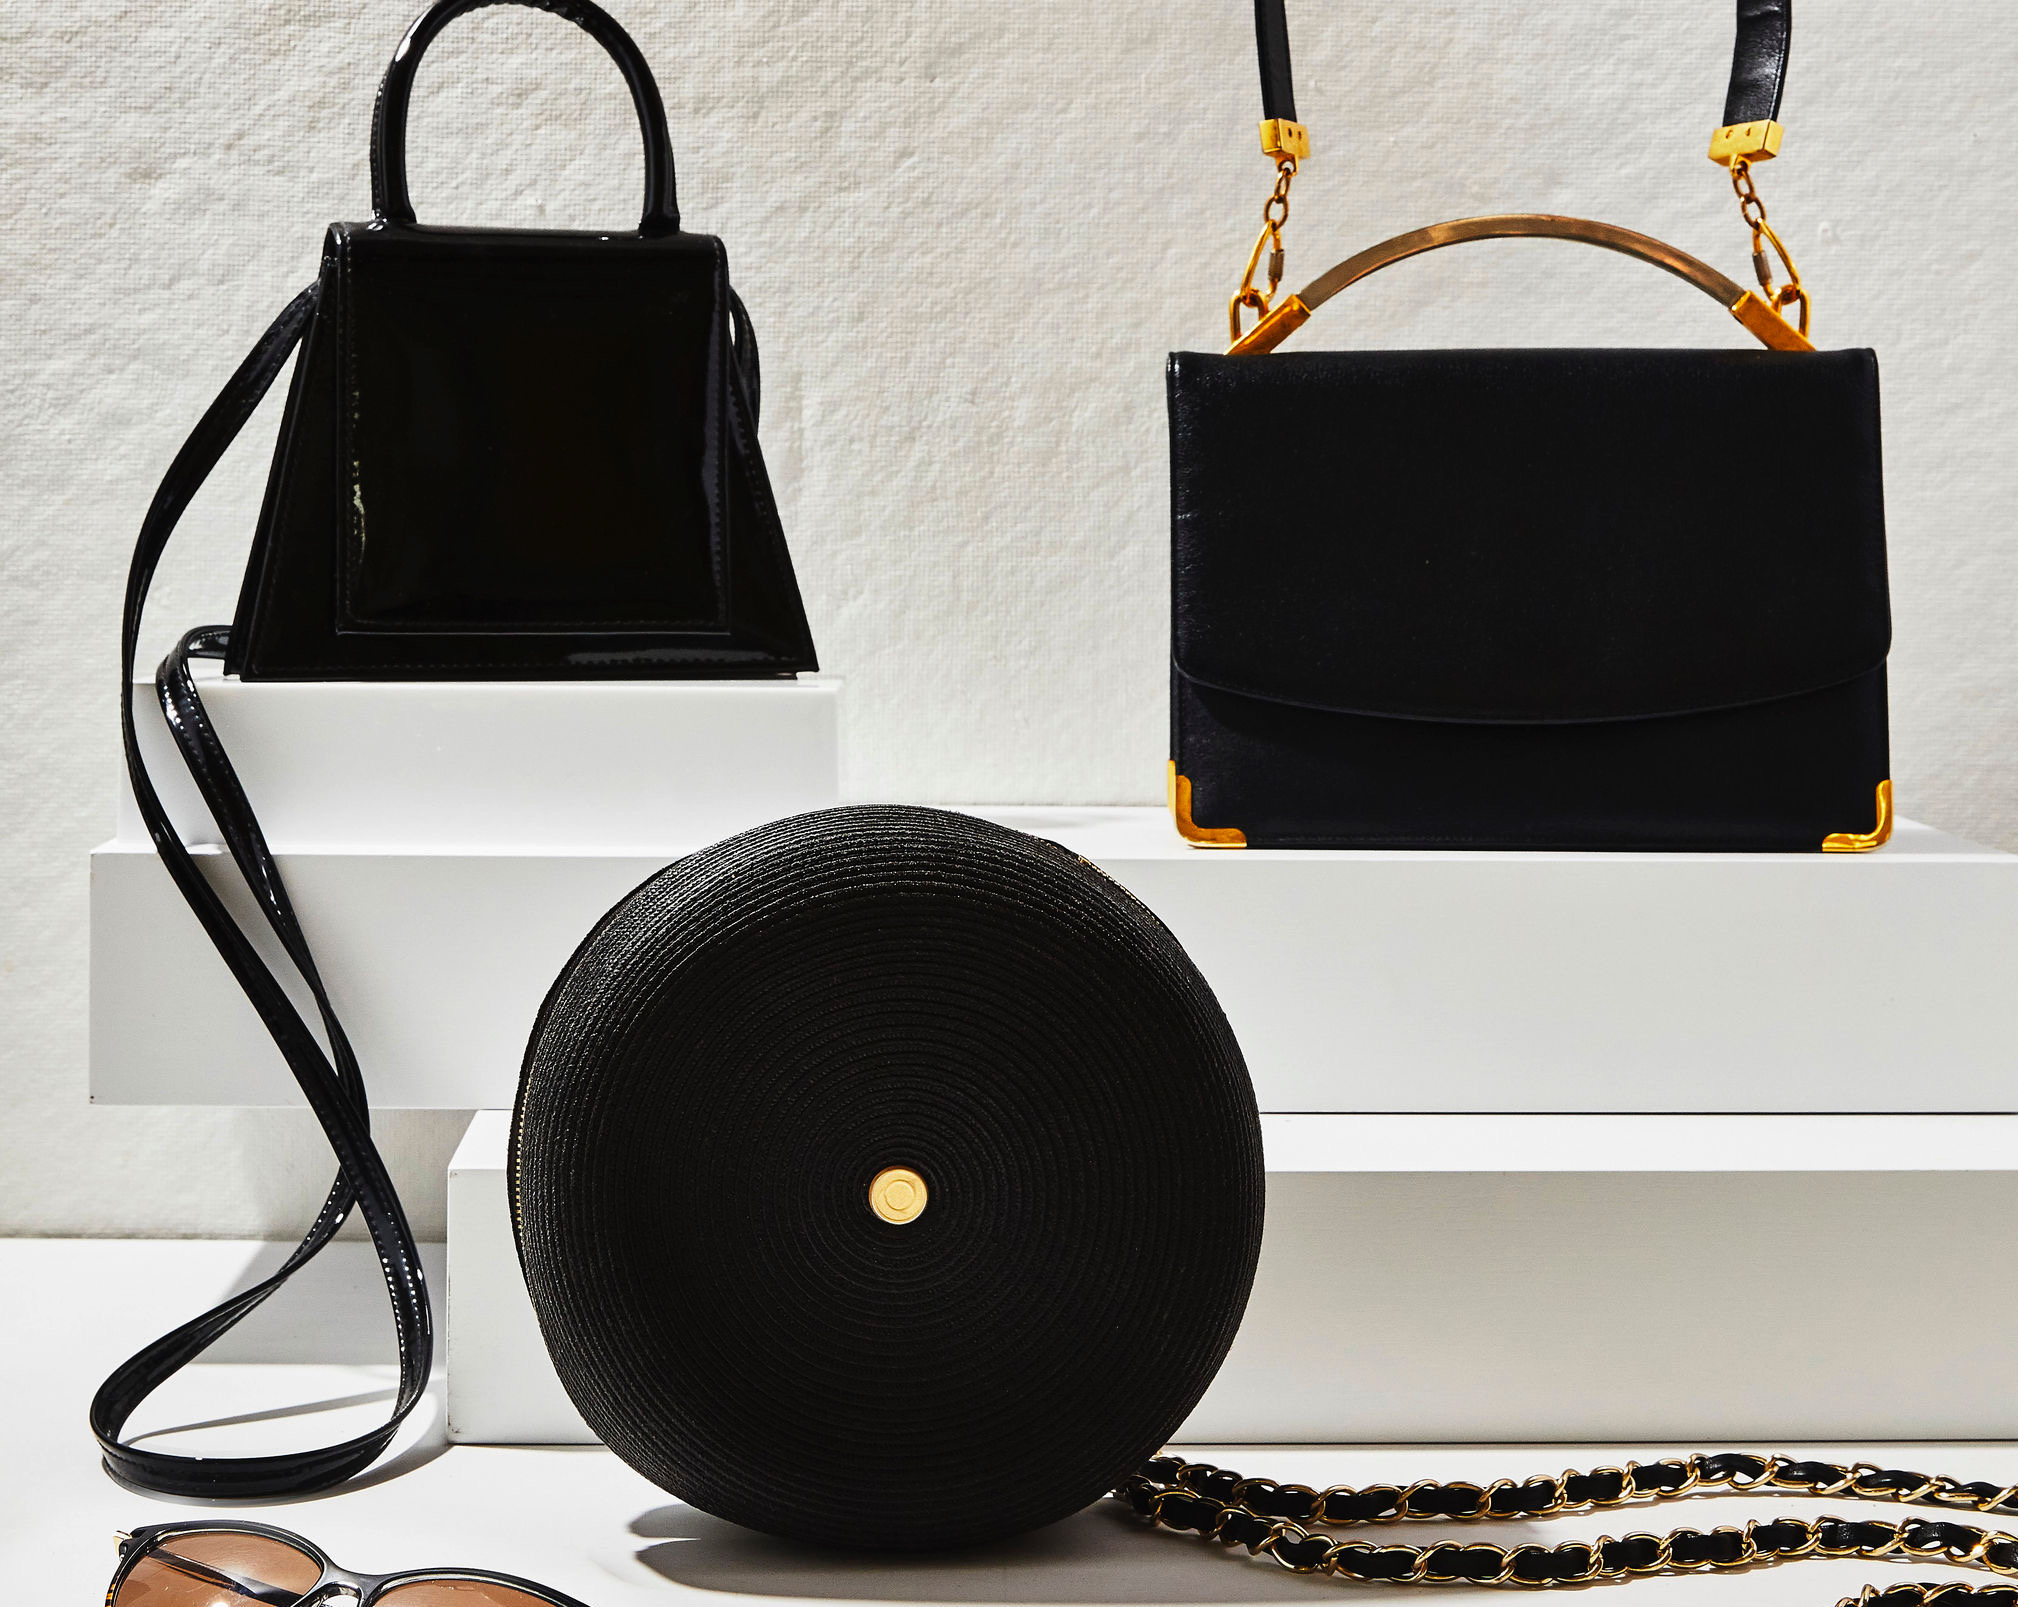 Assorted black handbags